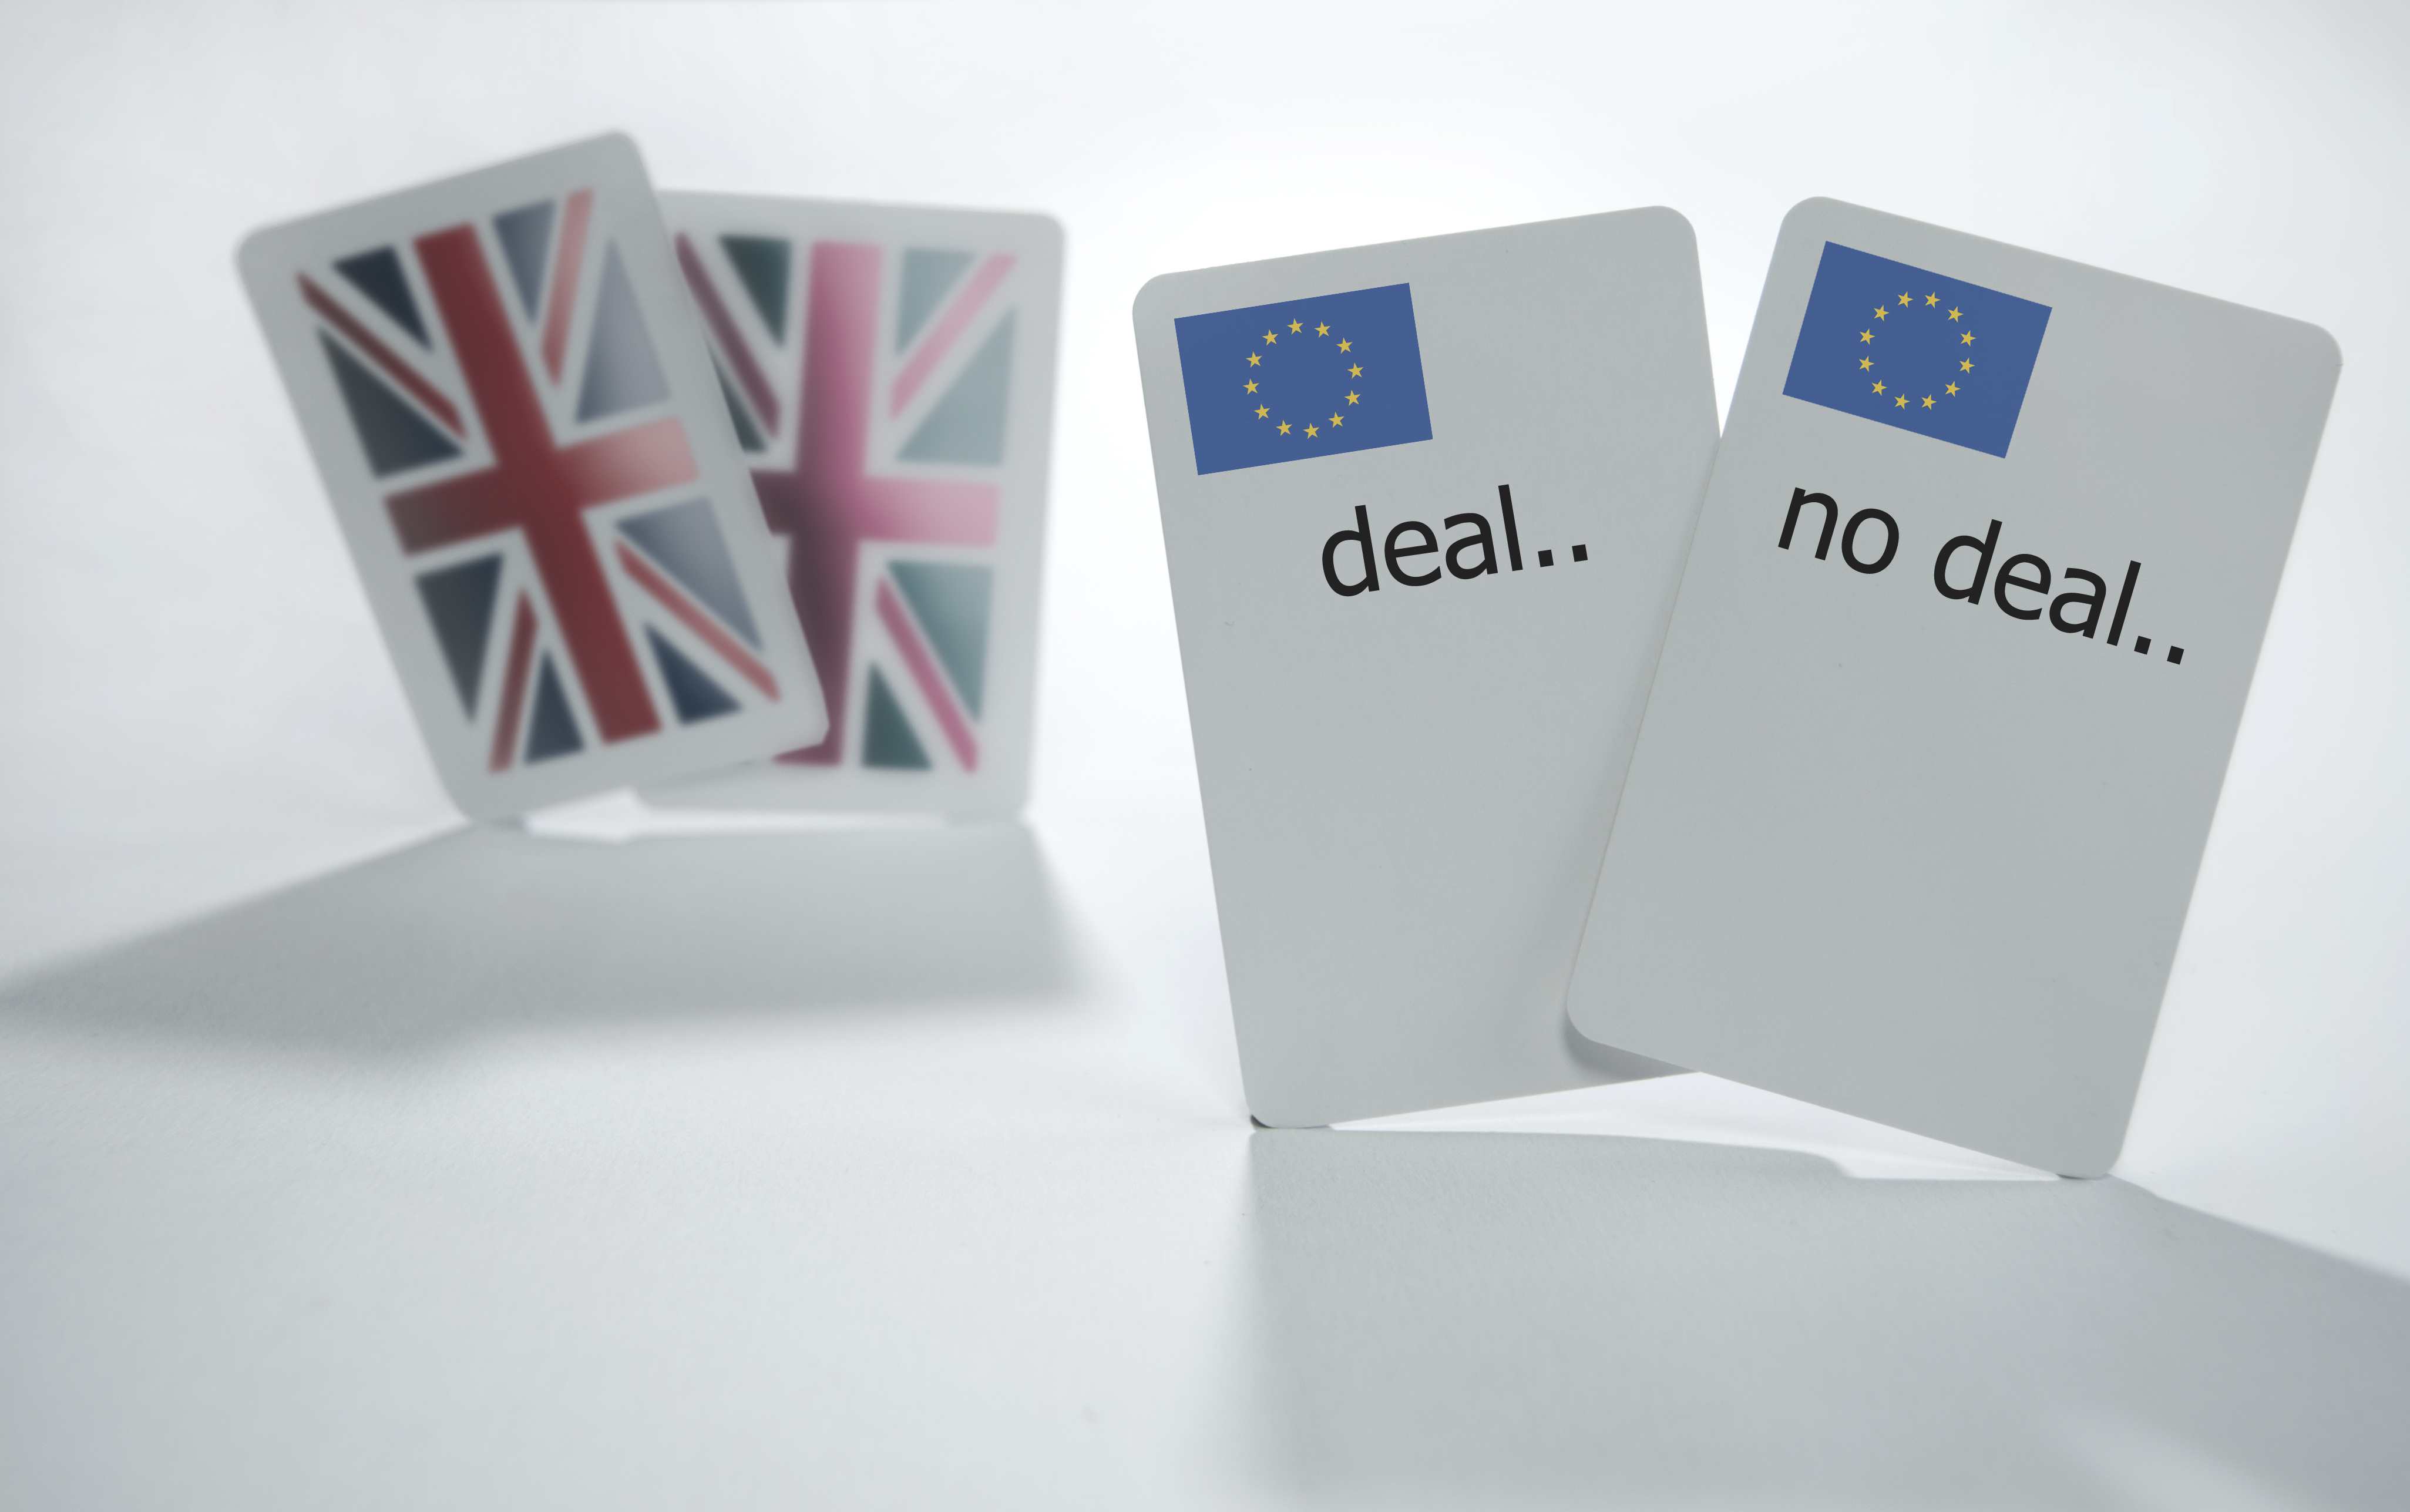 brexit deal cards